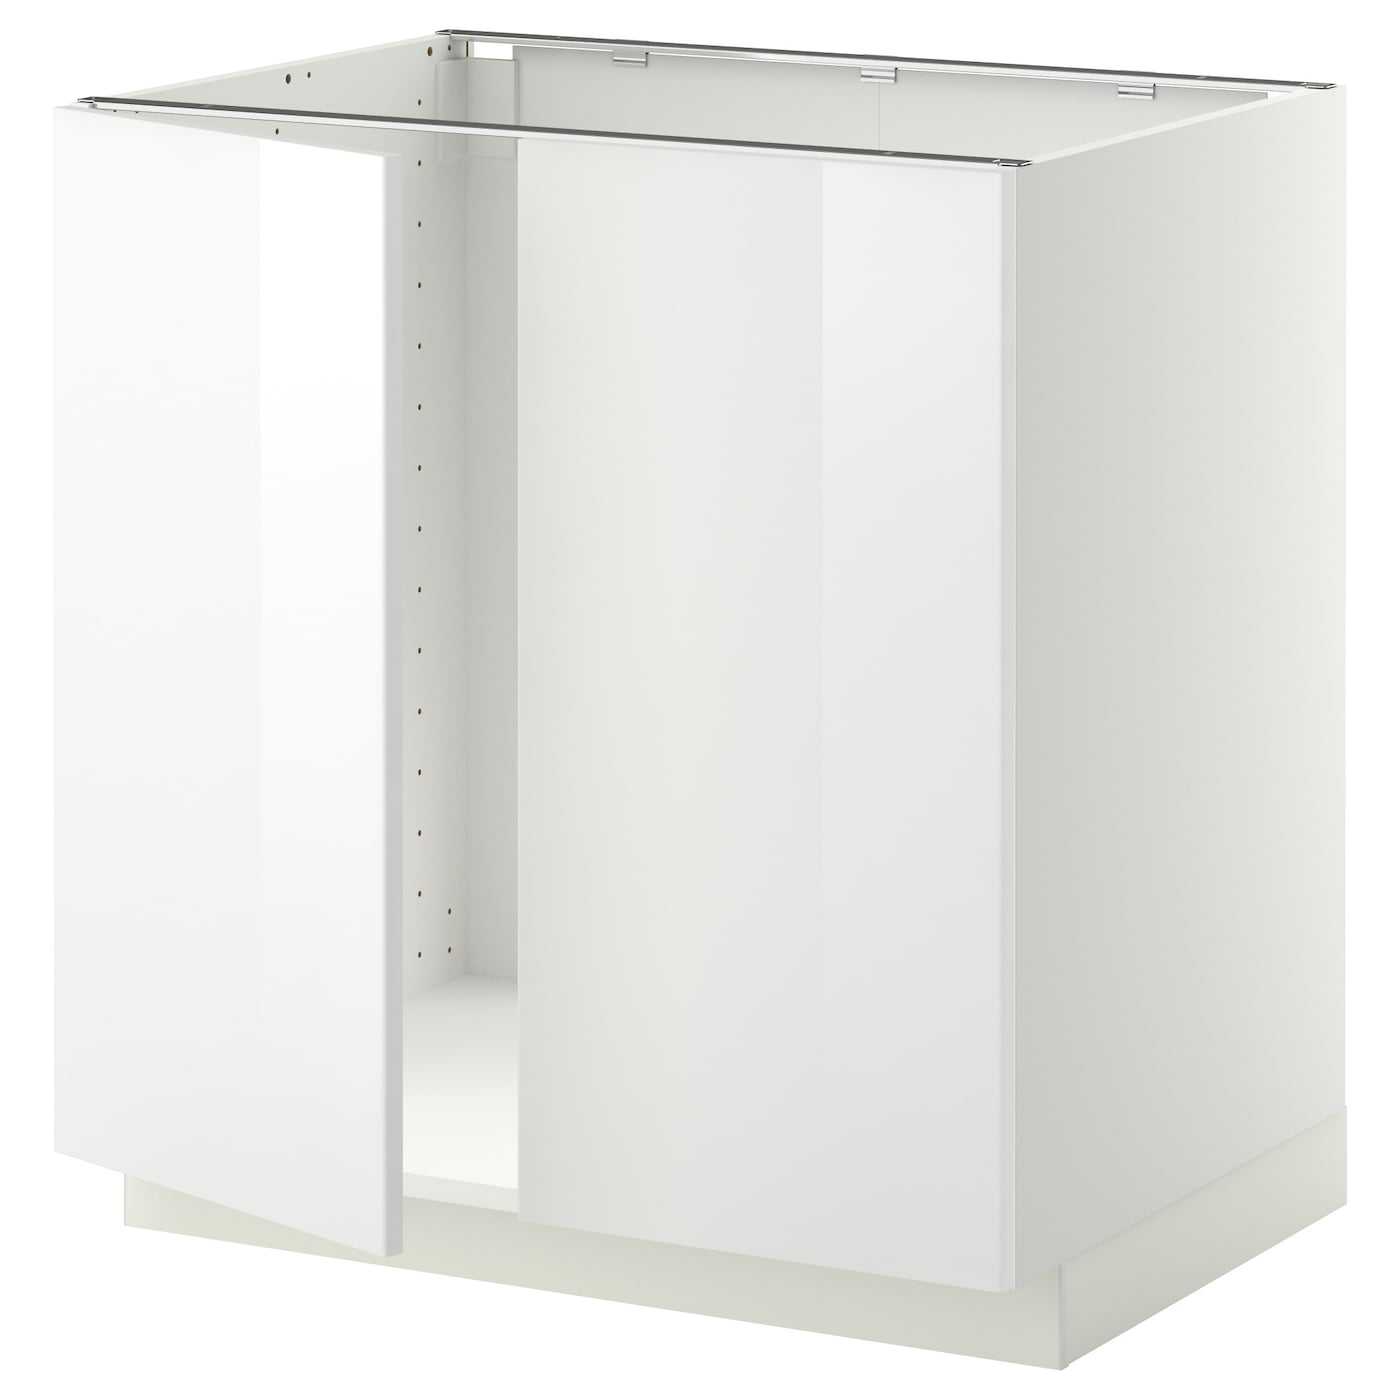 Metod base cabinet for sink 2 doors white ringhult white for Idea kitchen cabinet doors